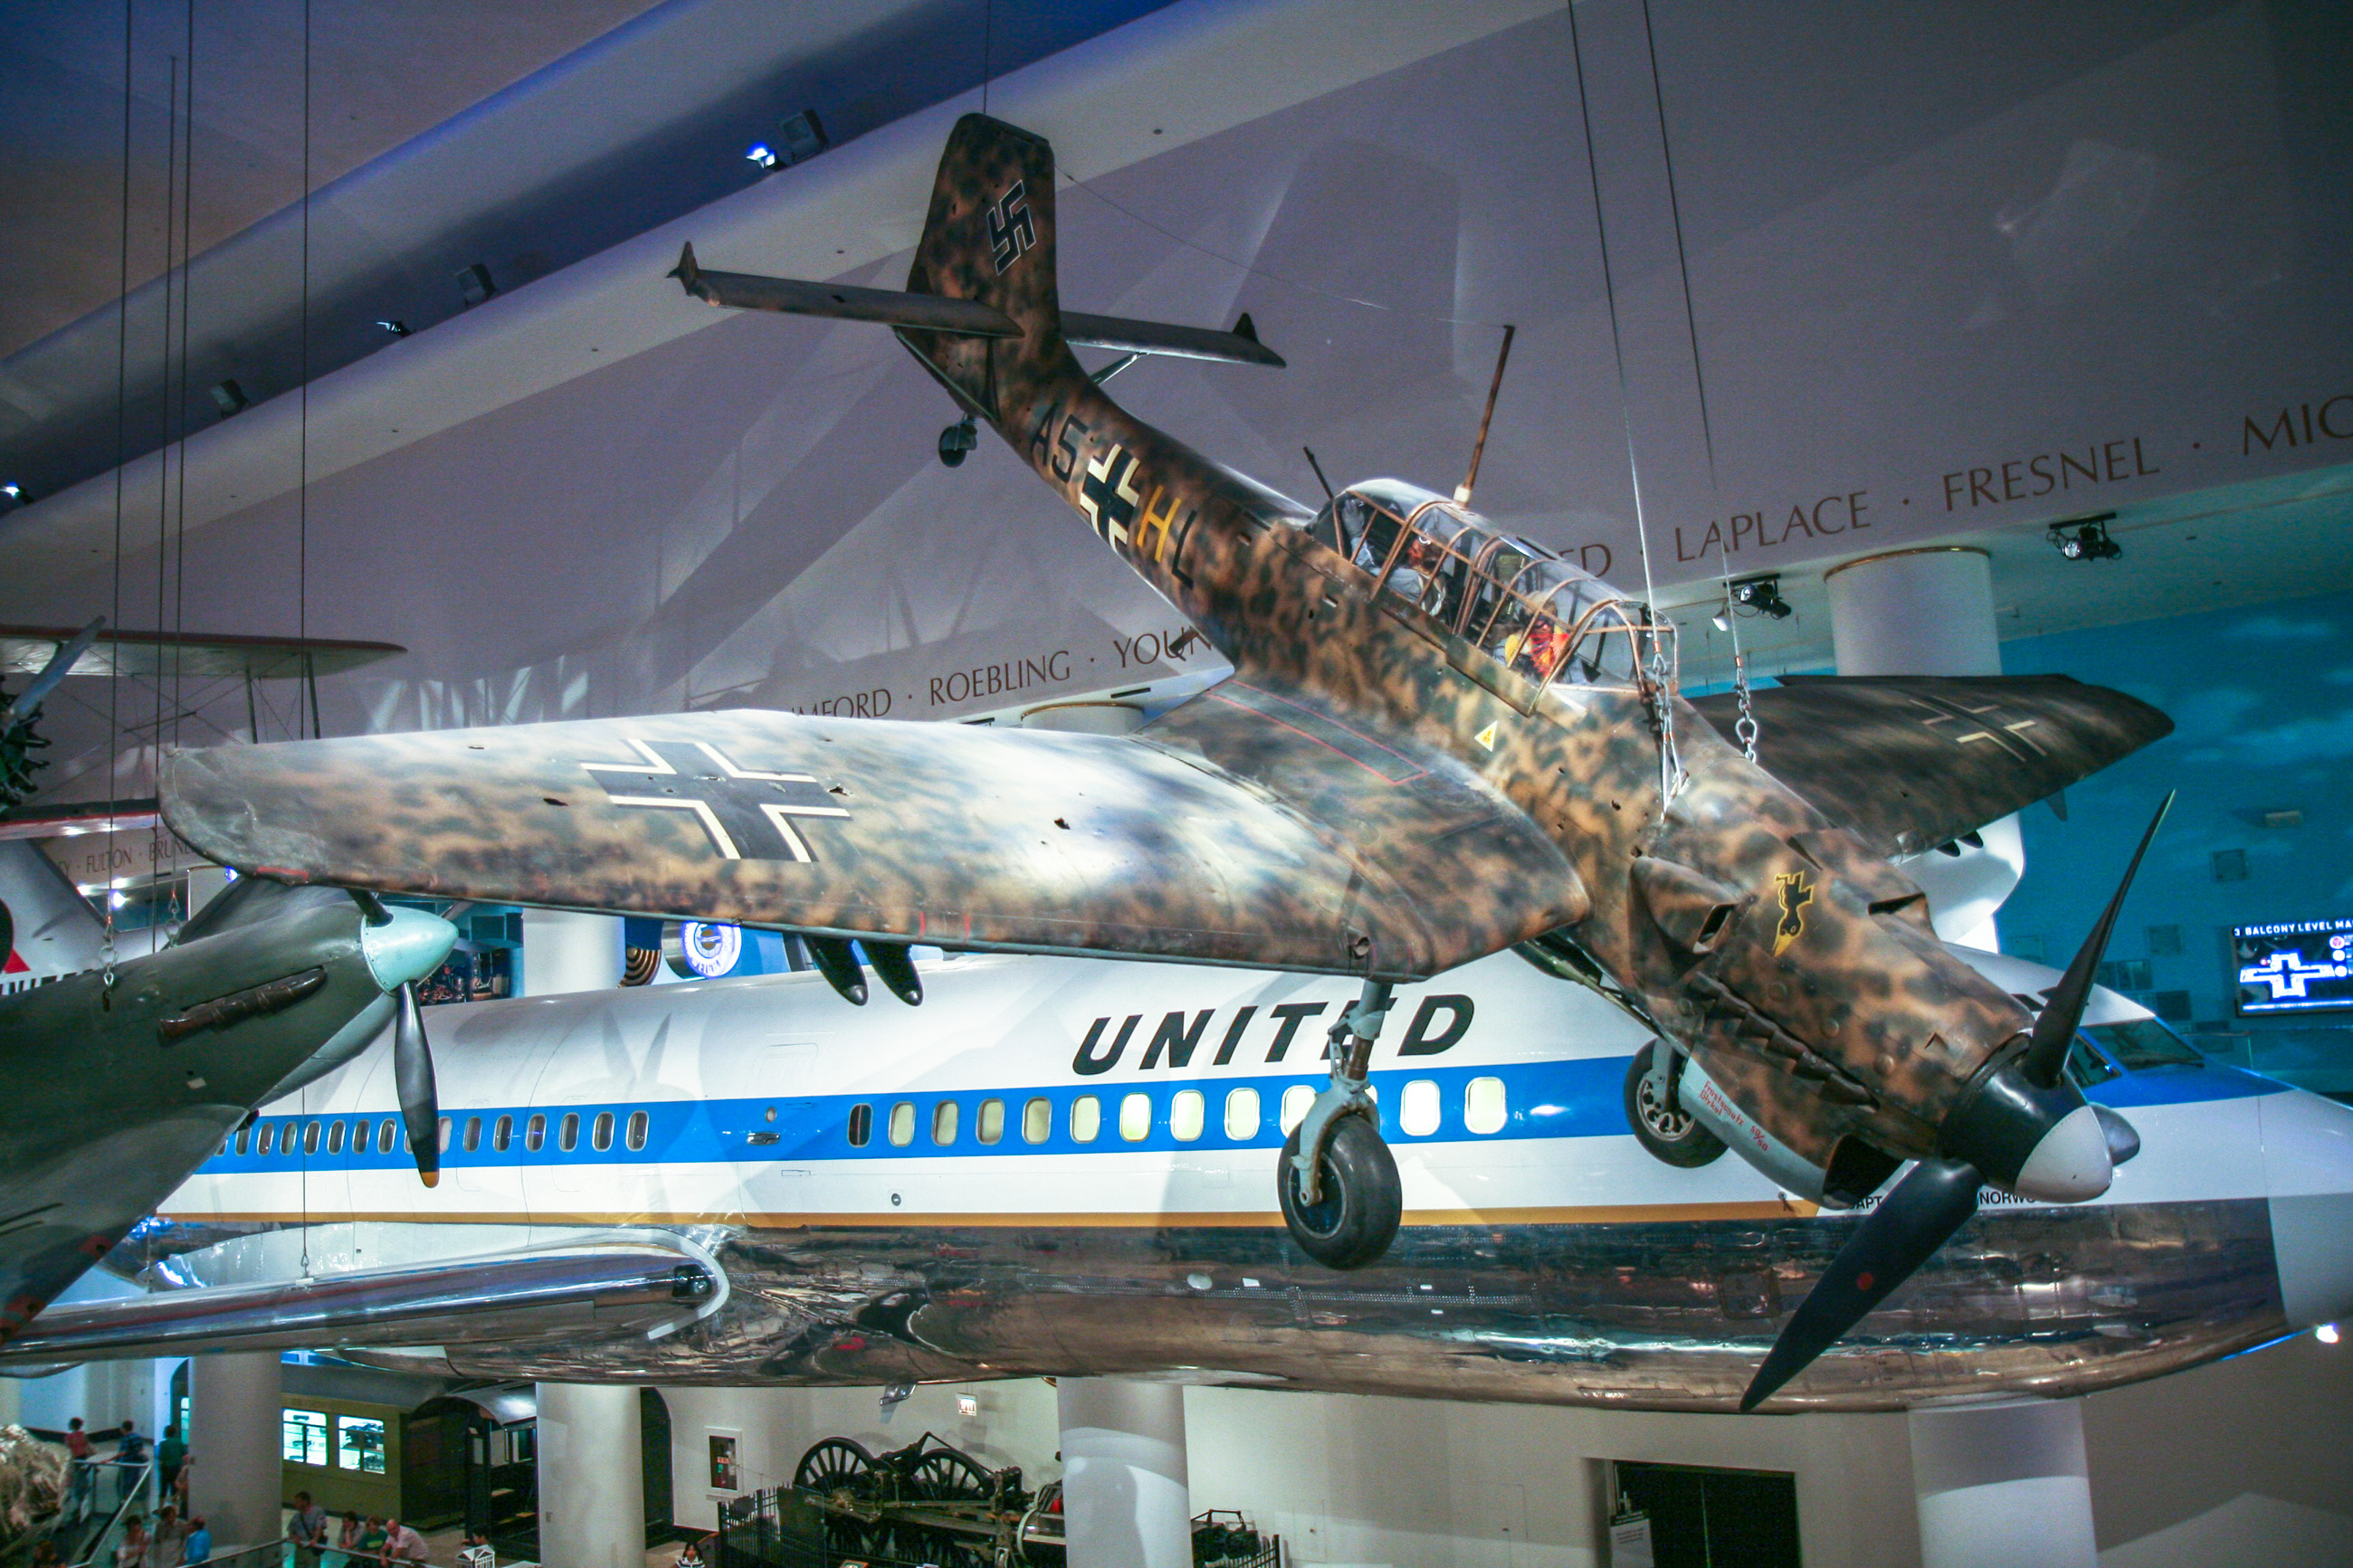 The Junkers Ju 87 on display in the Museum of Science and Industry in Chicago.(Photo Credit - William brain - CC BY-SA 3.0)